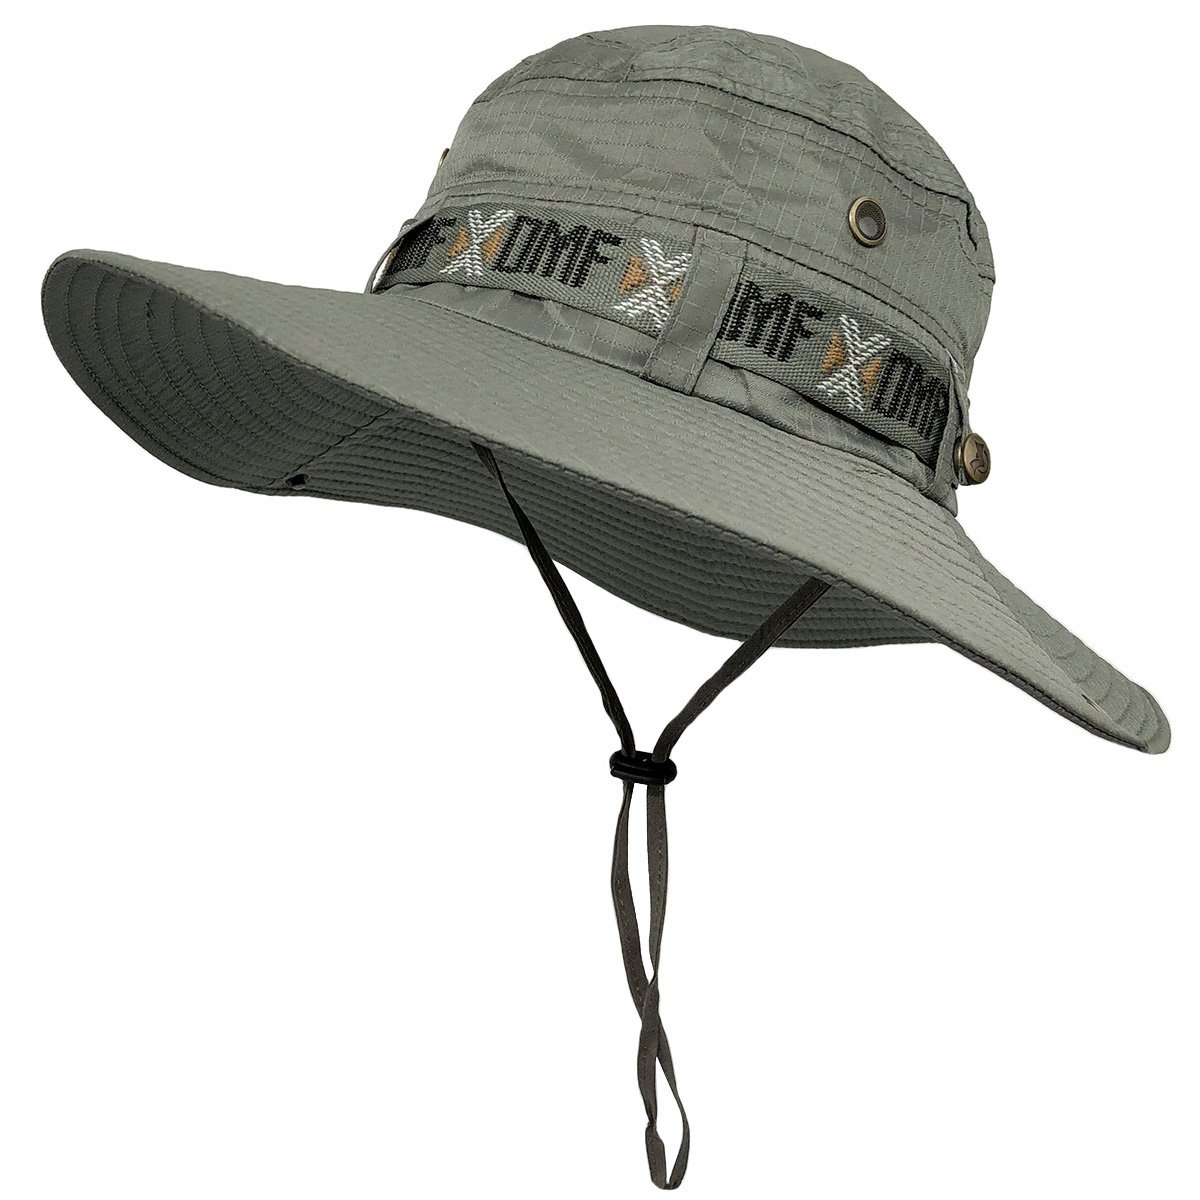 2c7a35b11 Details about Army Cap Men's Tactical Sniper Hats Sun Boonie Hat Summer Uv  Protection Fishing